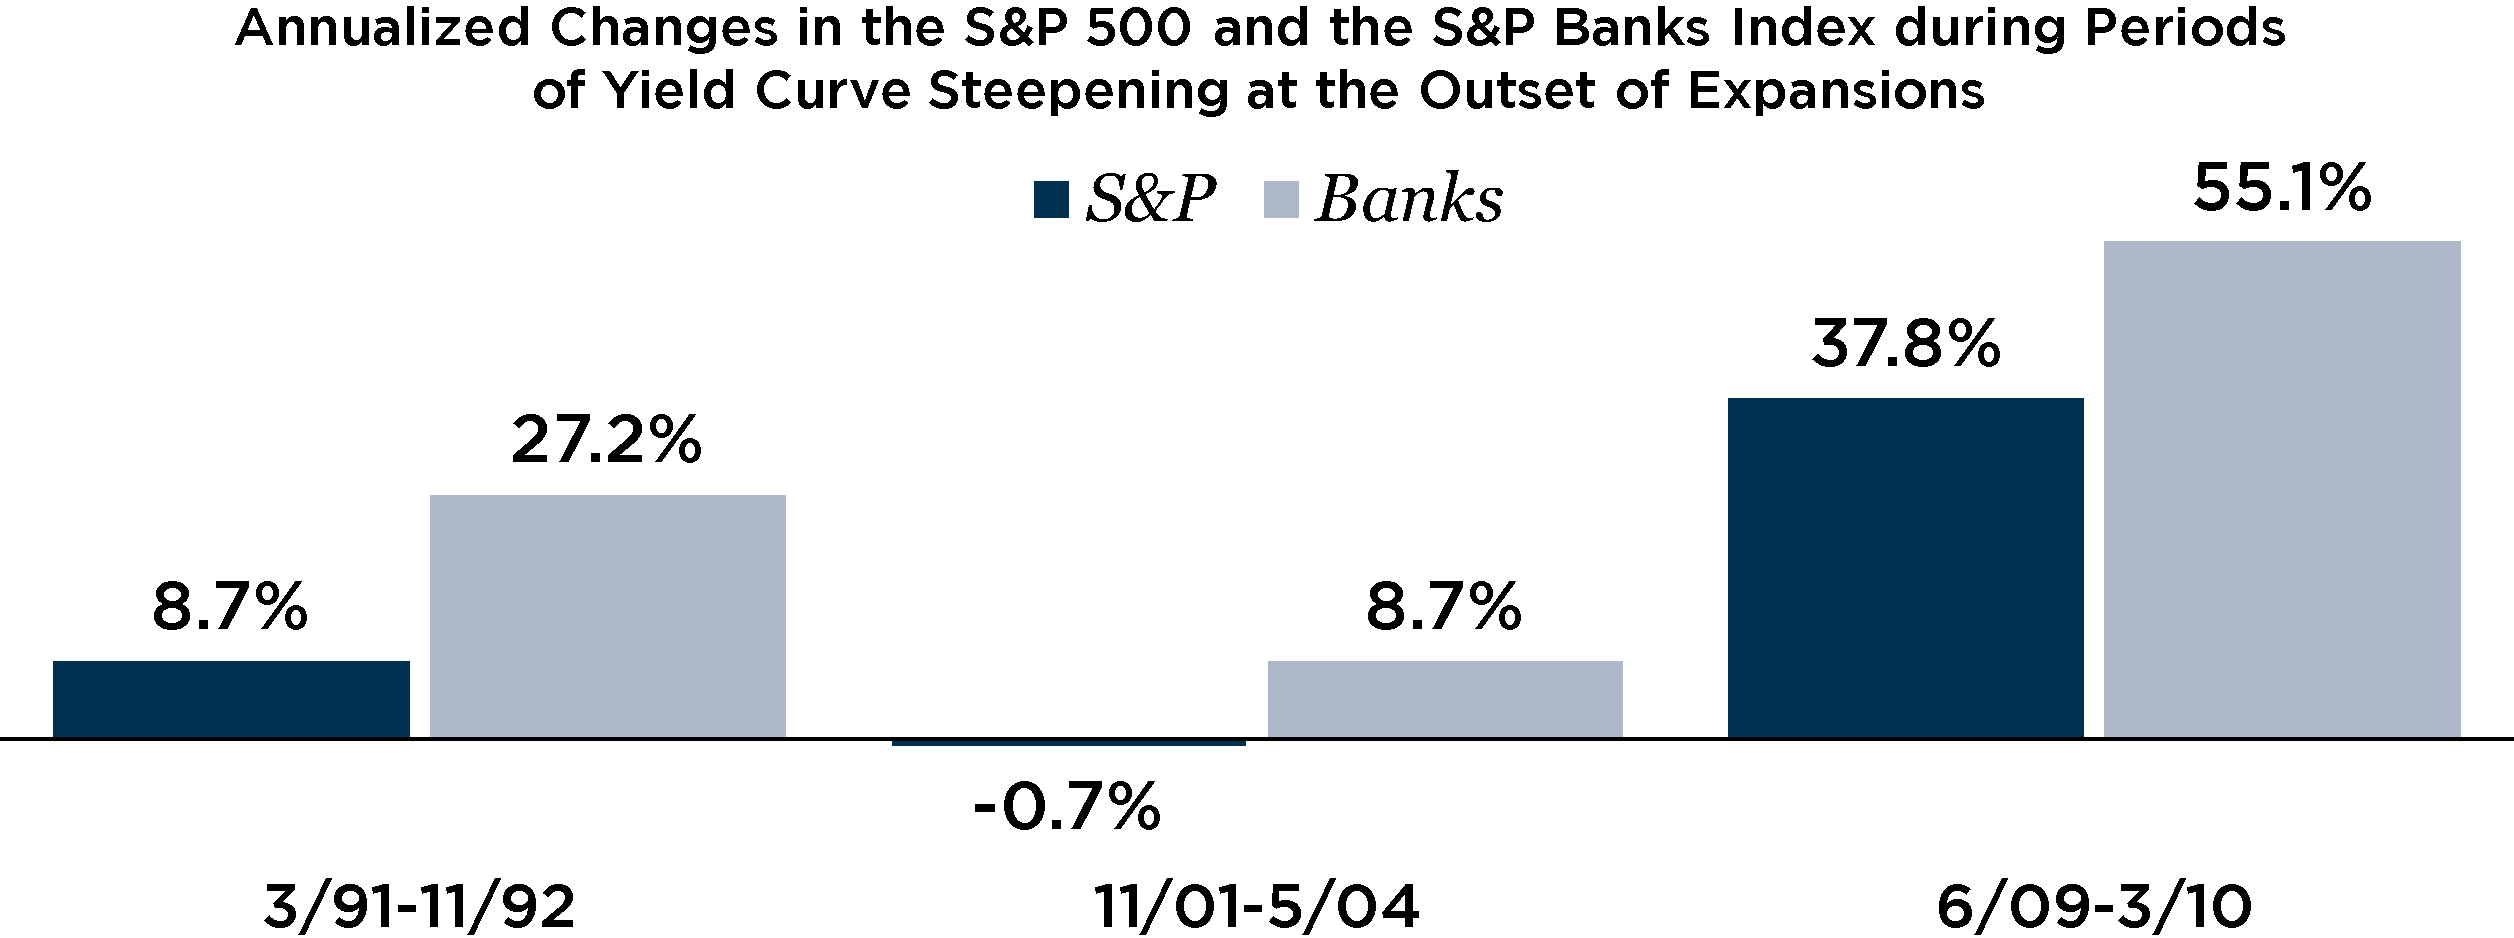 Graph depicting annualized changes in the S&P 500